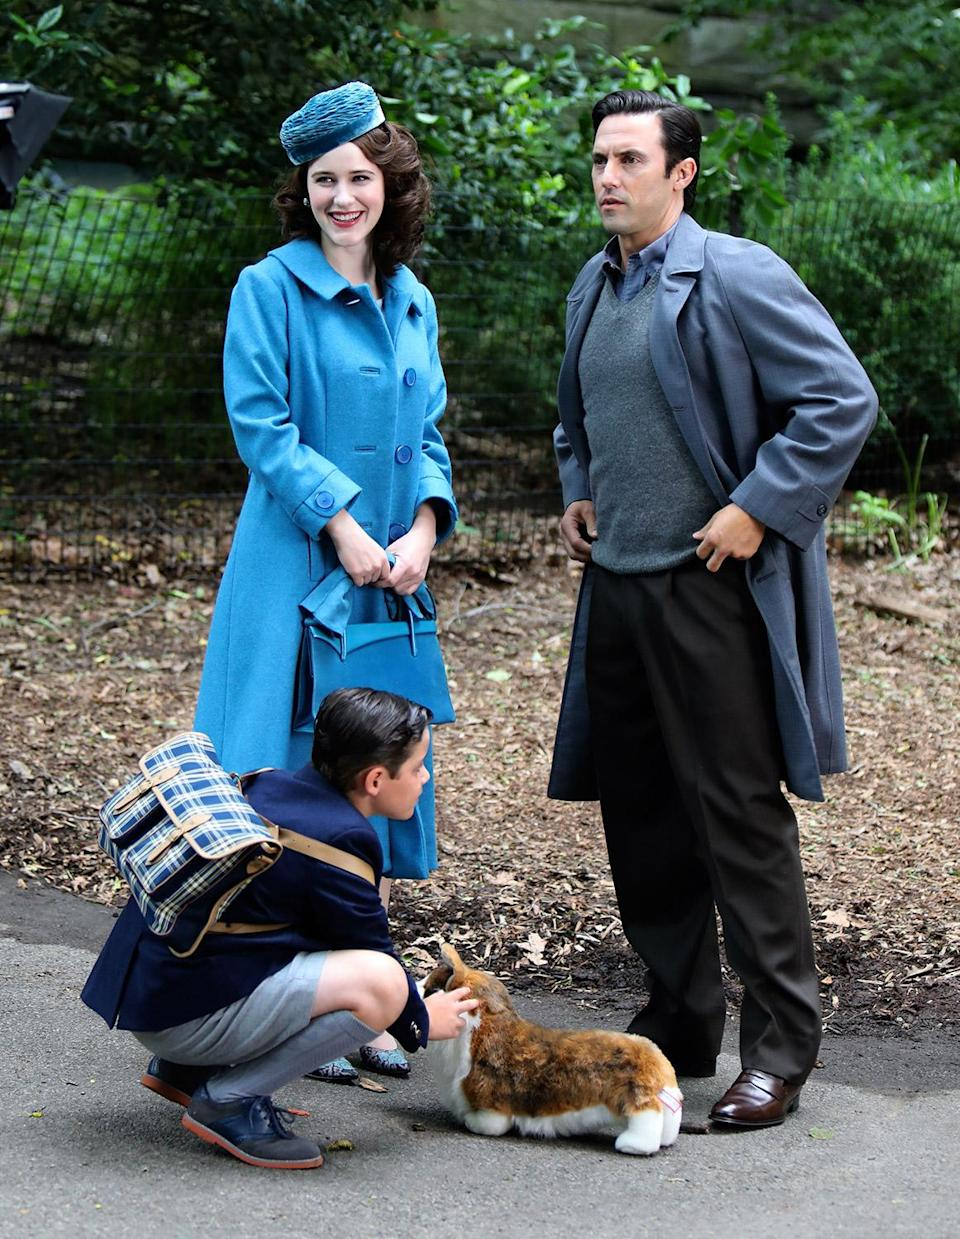 <p>Okay, let's pause talking about Milo Ventimiglia's mysterious new character and talk about the fact that they are using a stuffed corgi as a stand-in. Give that stuffed Corgi the Emmy! </p>